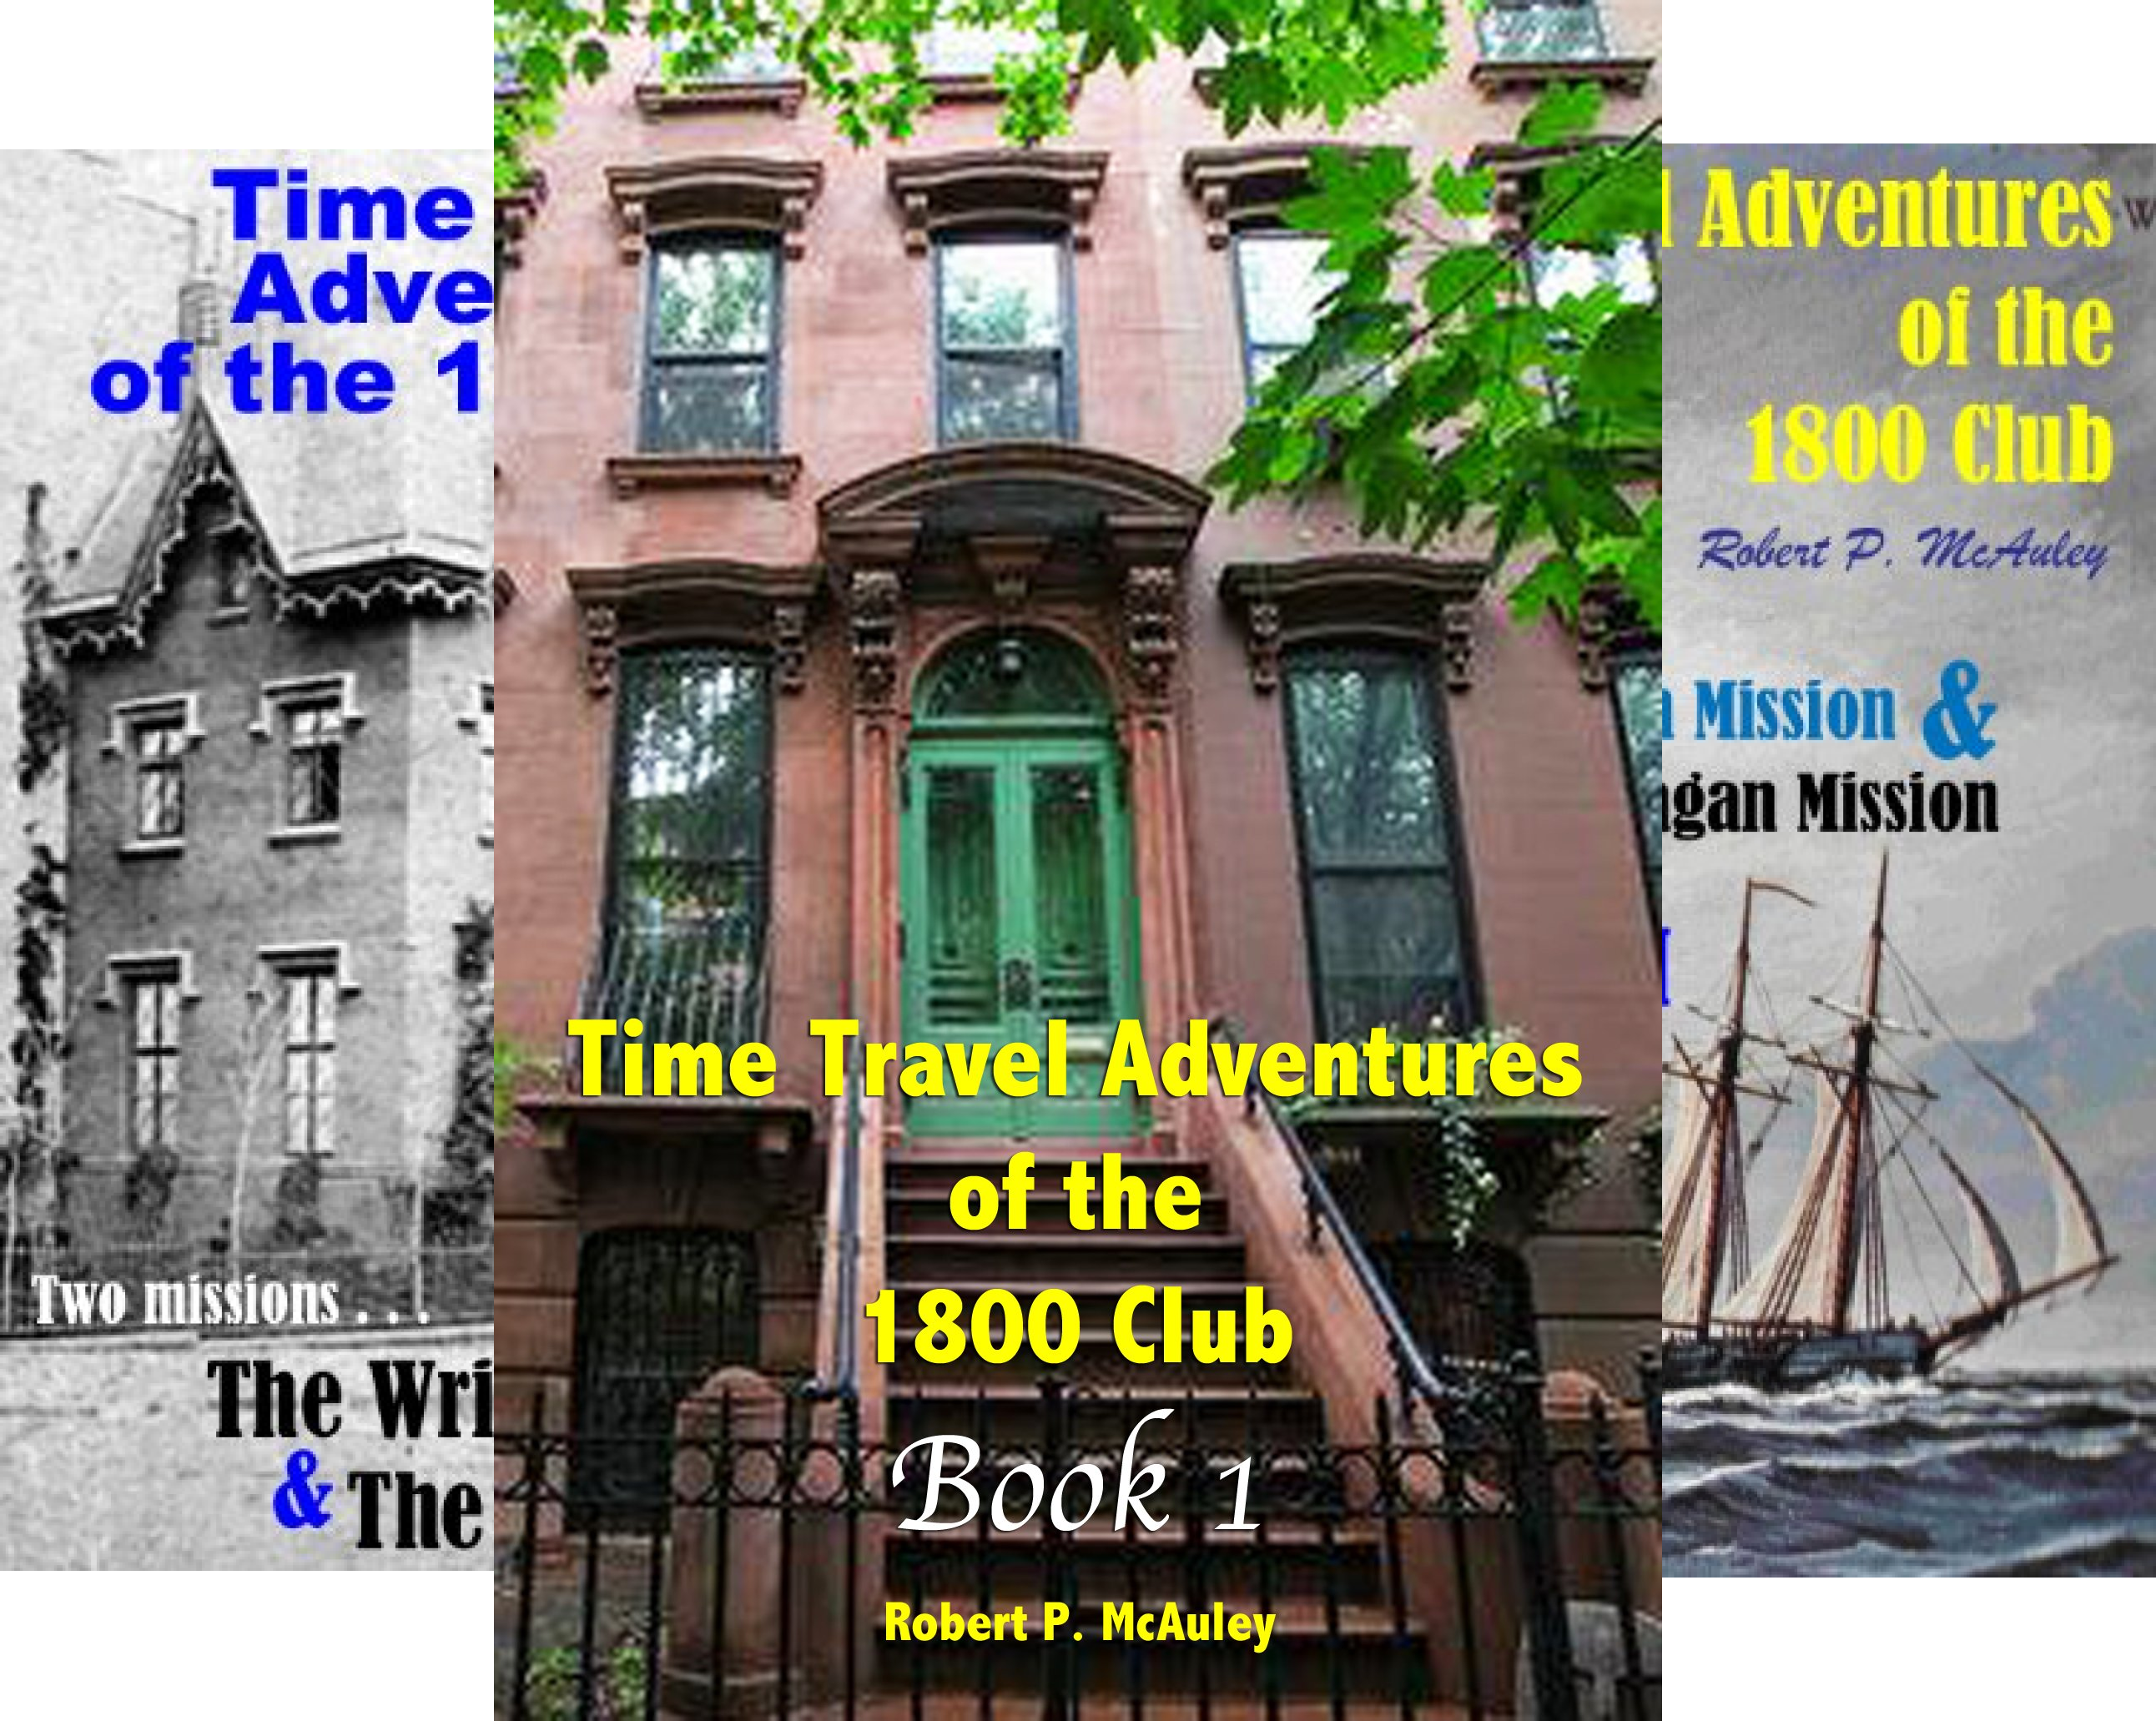 Time Travel Adventures Of The 1800 Club (14 Book Series)